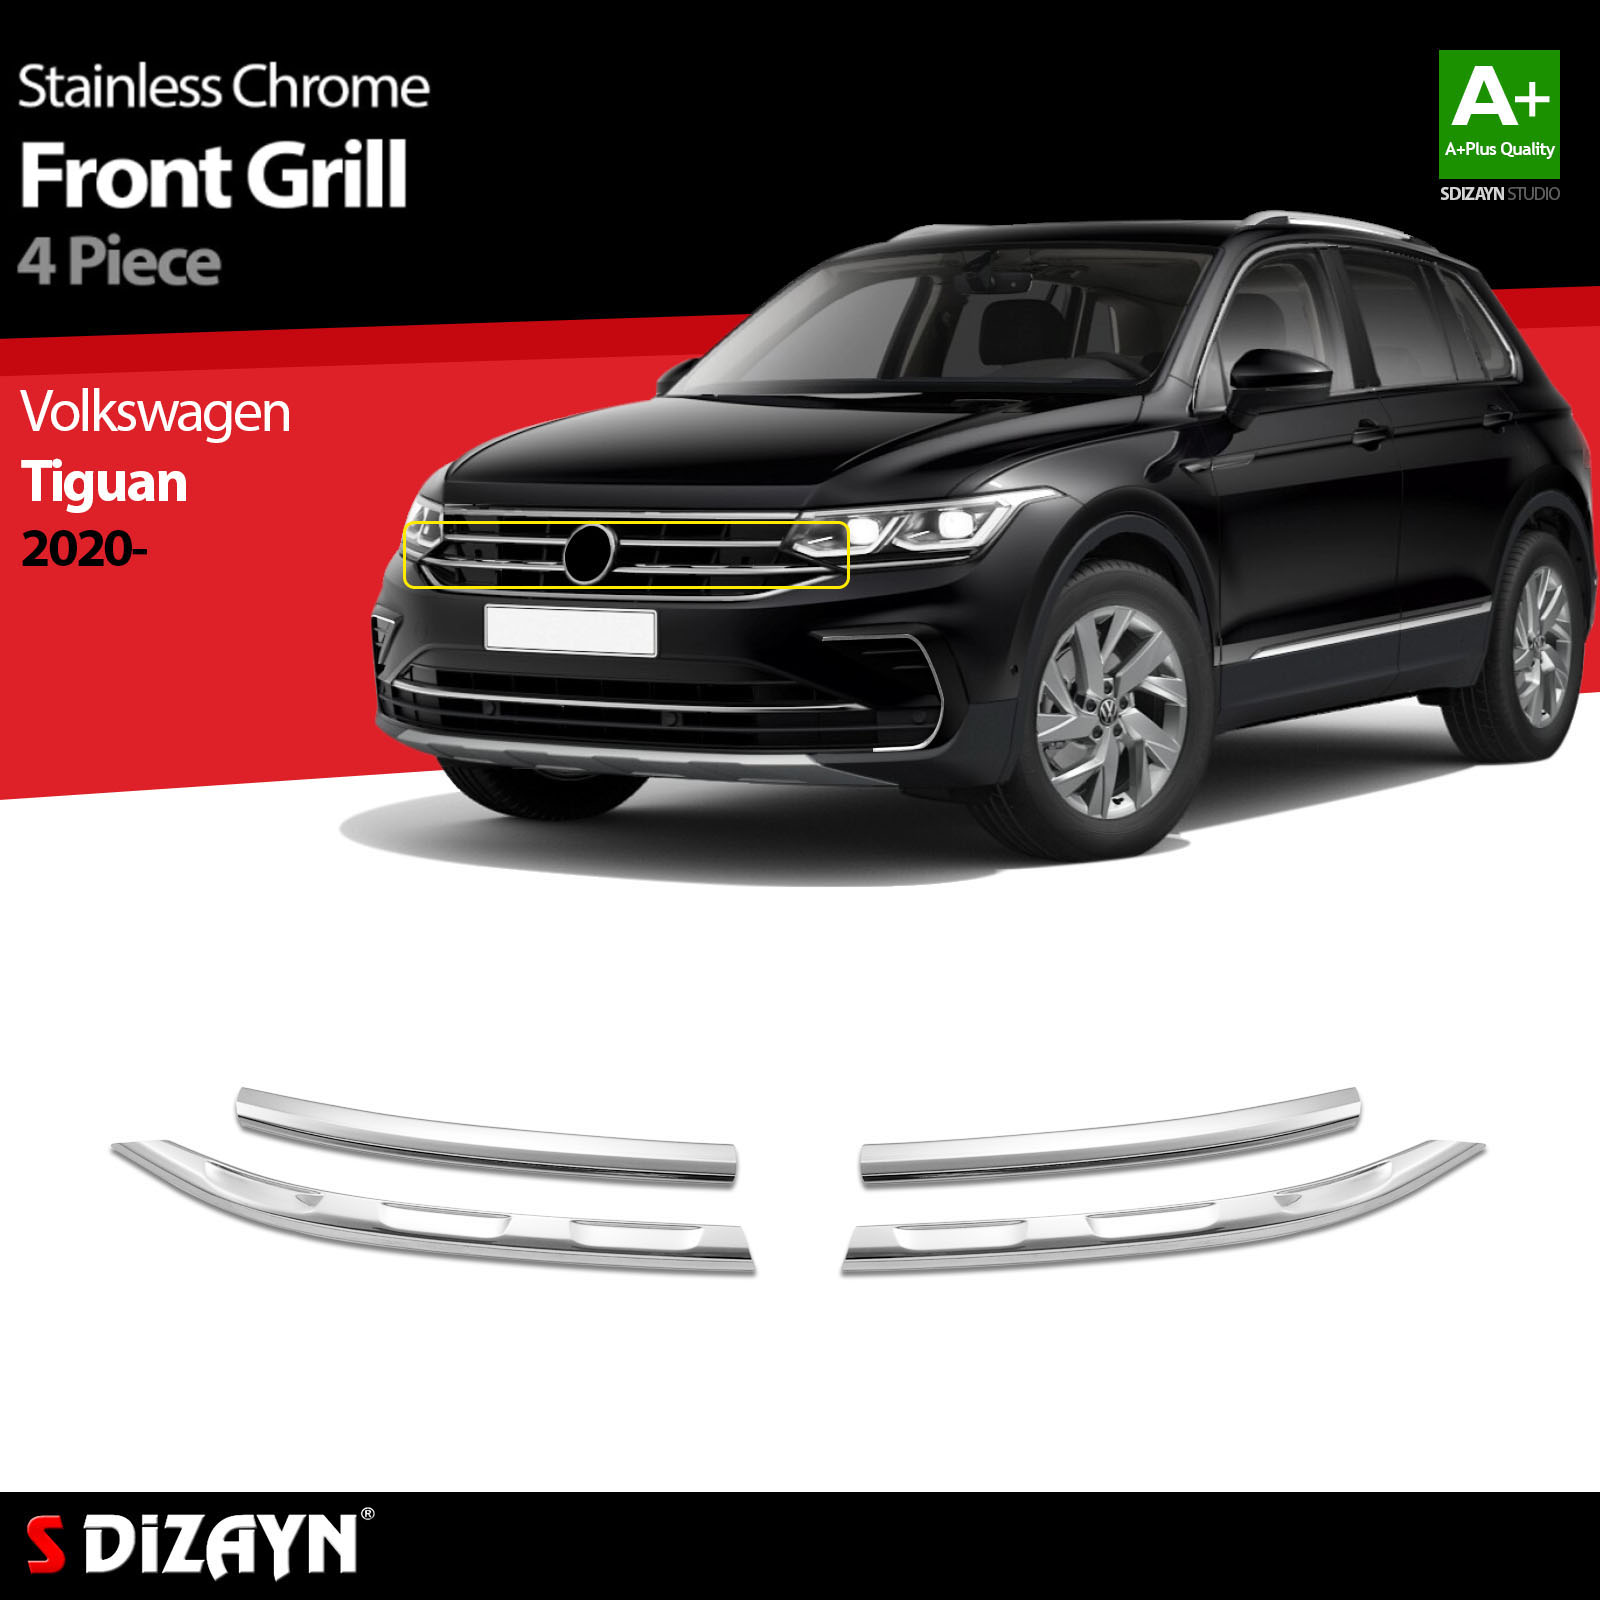 For Volkswagen Tiguan 2 Chrome Front Grill Stainless Steel 4 Pc VW Exterior Car Accessories Parts Auto Products Stickers Styling